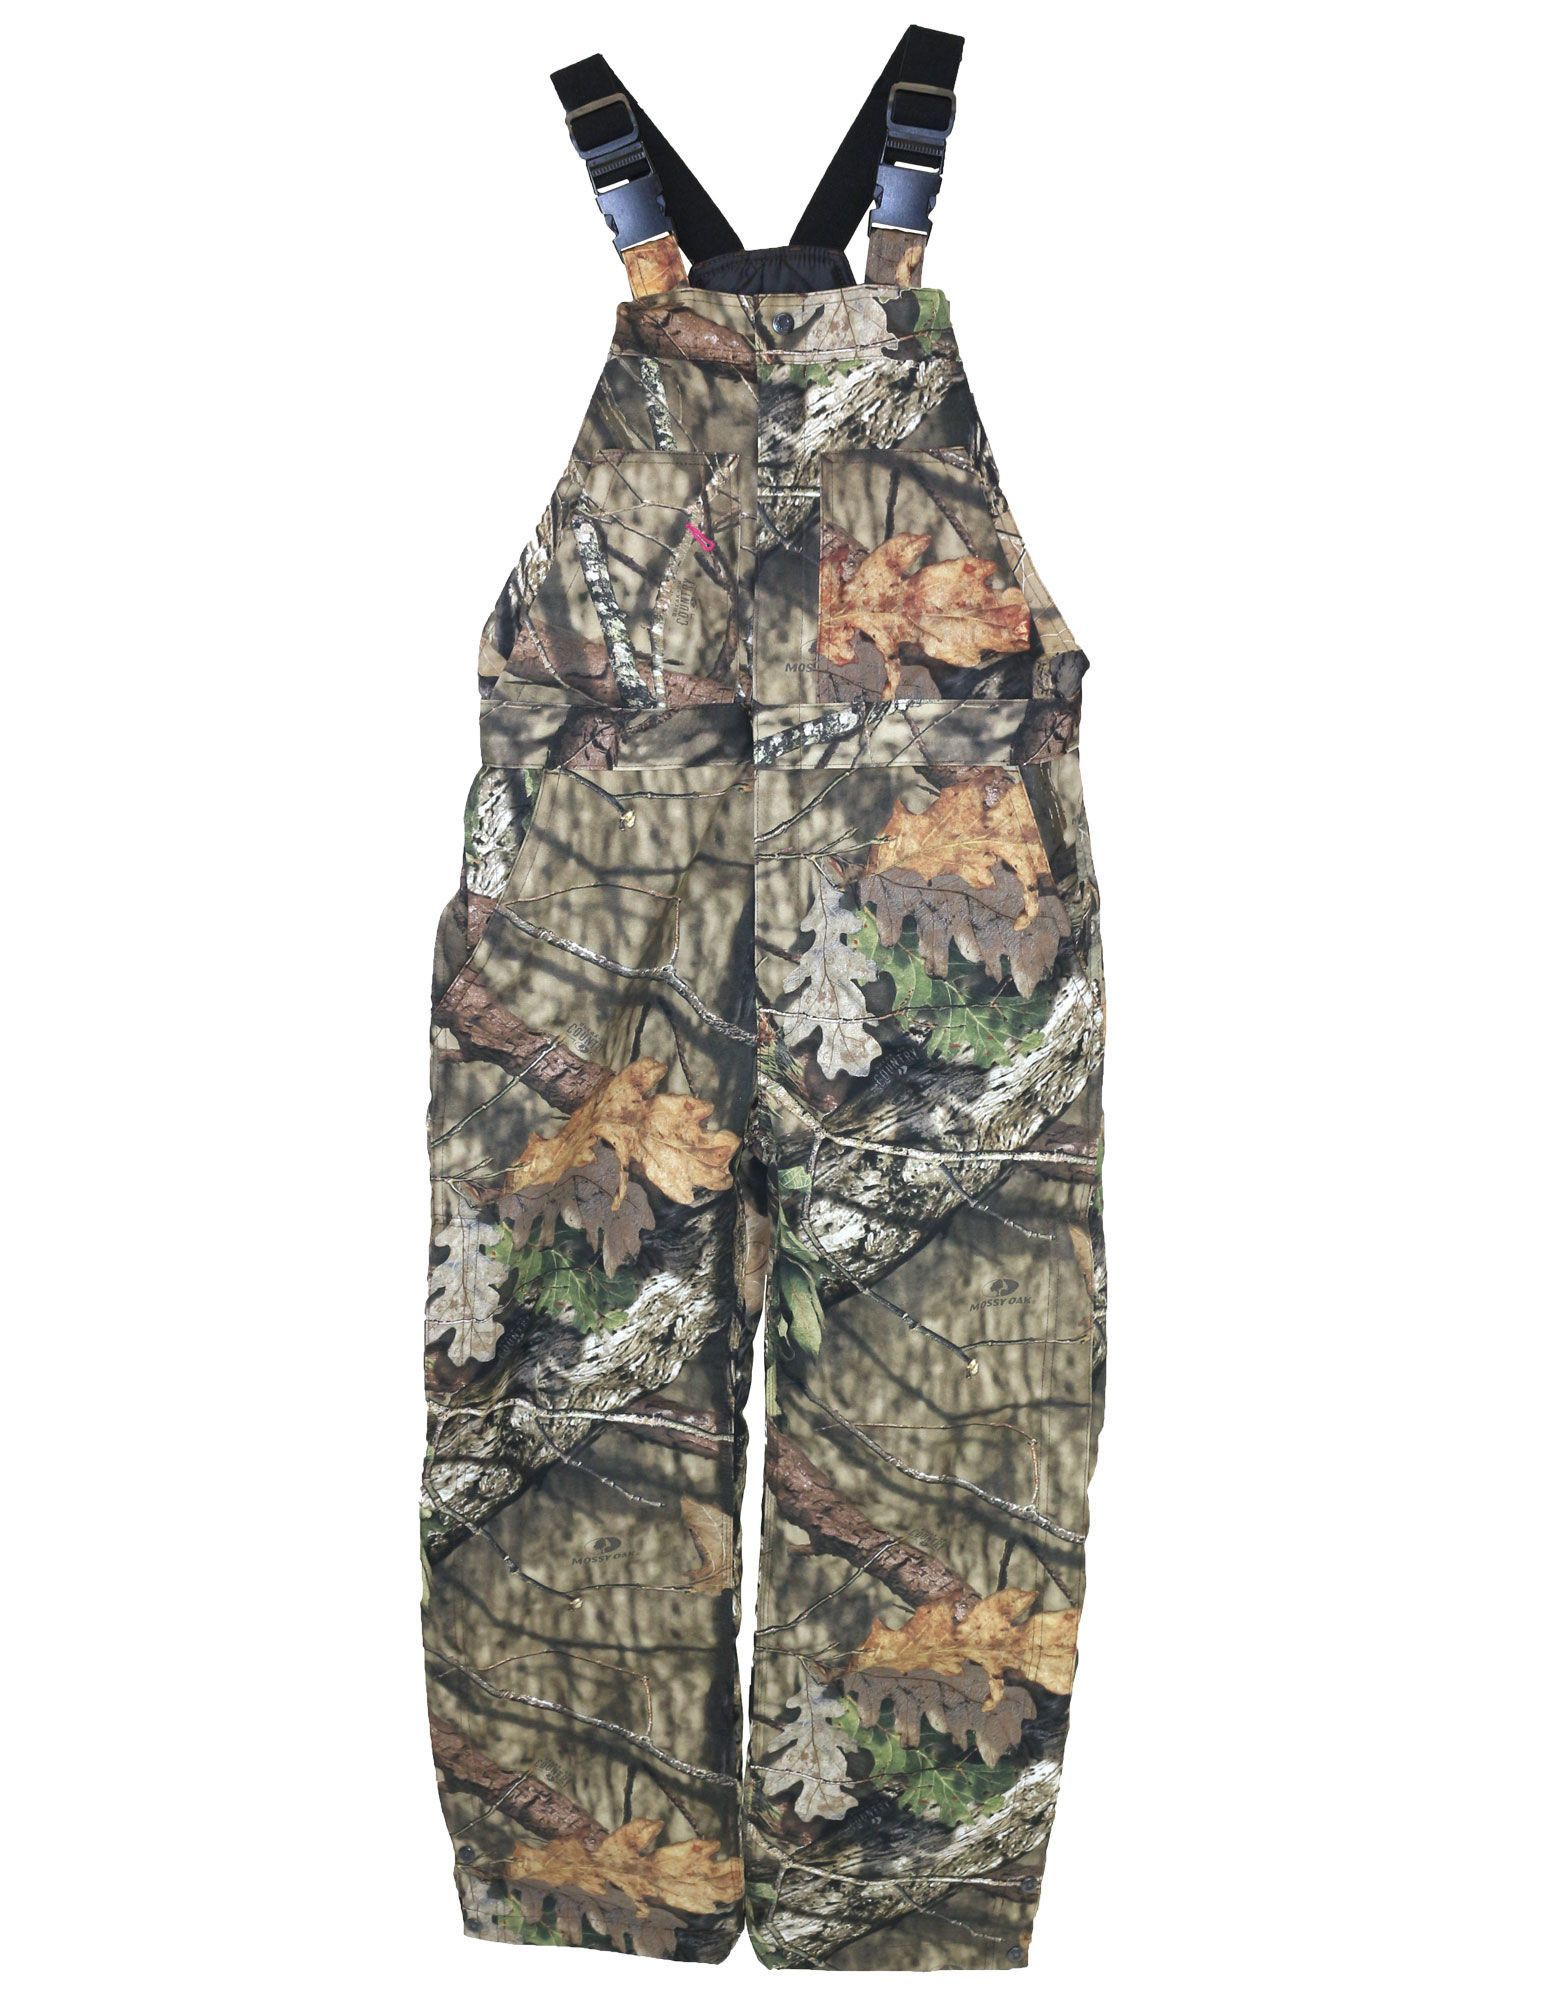 hunting insulated bib overall by walls overalls bib on walls workwear insulated coveralls id=26926